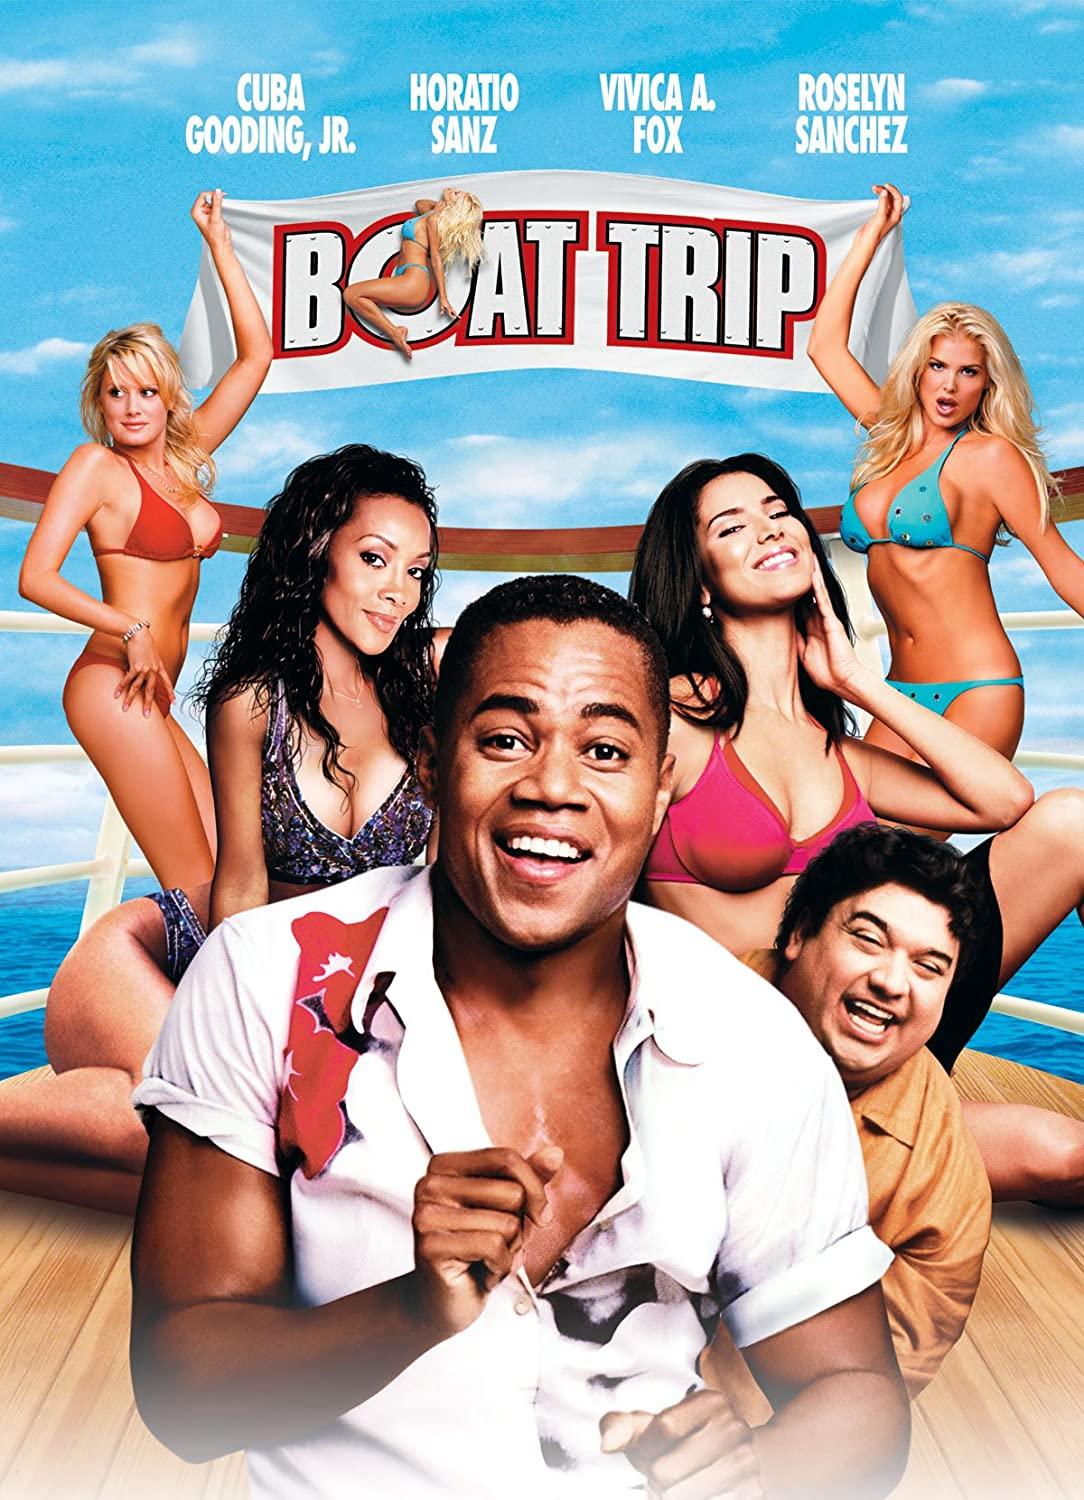 18+ Boat Trip 2002 English 1080p HDRip 1.5GB